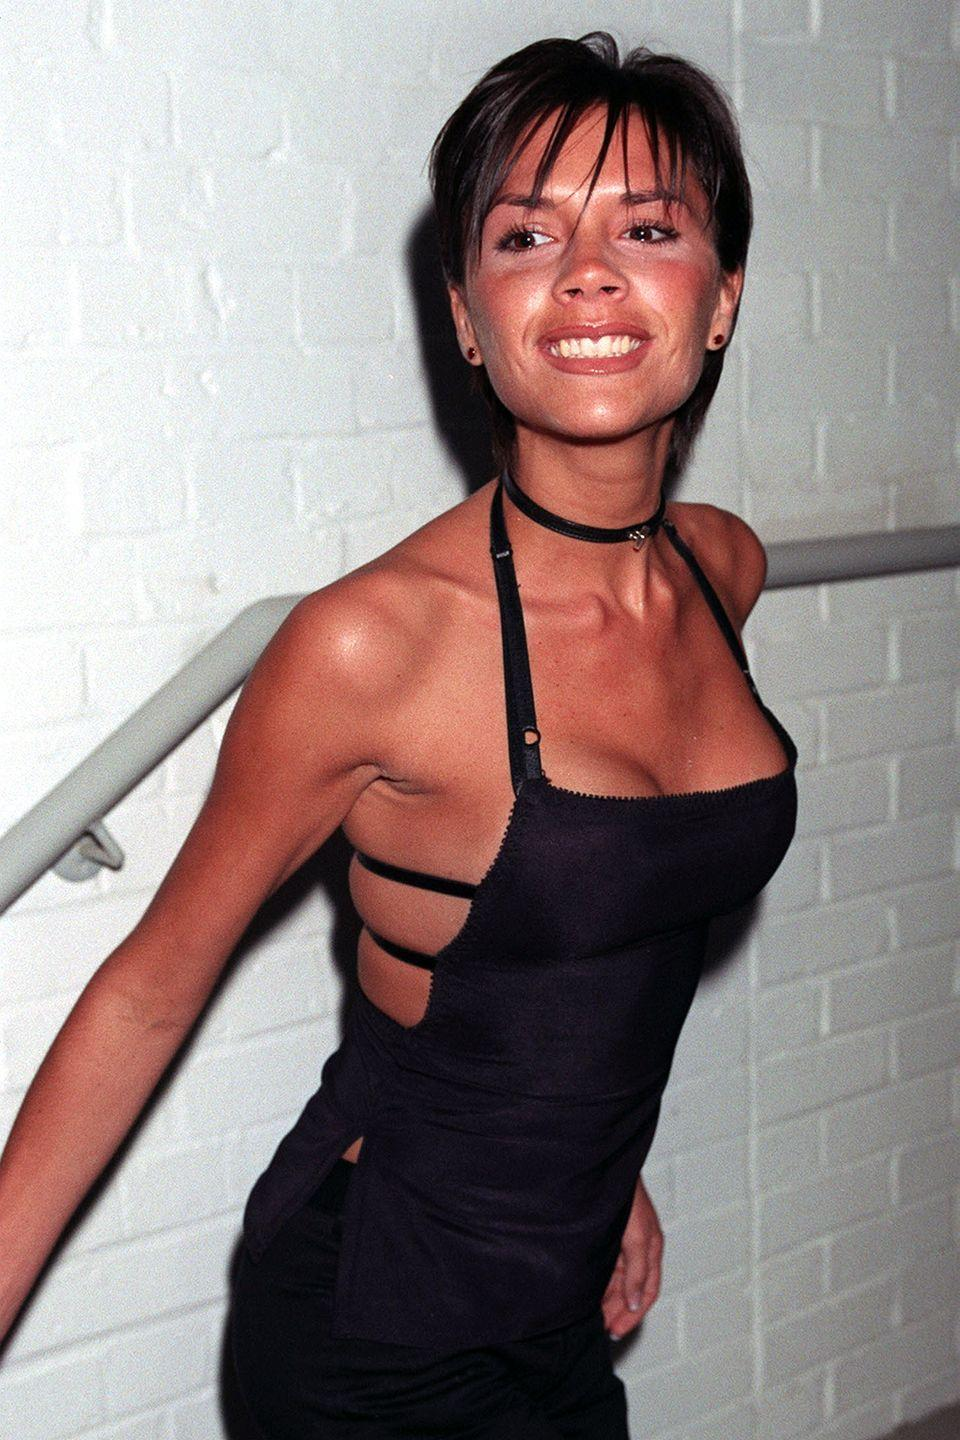 "<p>But she had to <a href=""http://www.nydailynews.com/entertainment/gossip/victoria-beckham-acting-lessons-hopes-landing-cameo-sex-city-sequel-article-1.402021"" rel=""nofollow noopener"" target=""_blank"" data-ylk=""slk:turn it down"" class=""link rapid-noclick-resp"">turn it down</a> due to scheduling conflicts with Spice Girls tour rehearsals.</p>"